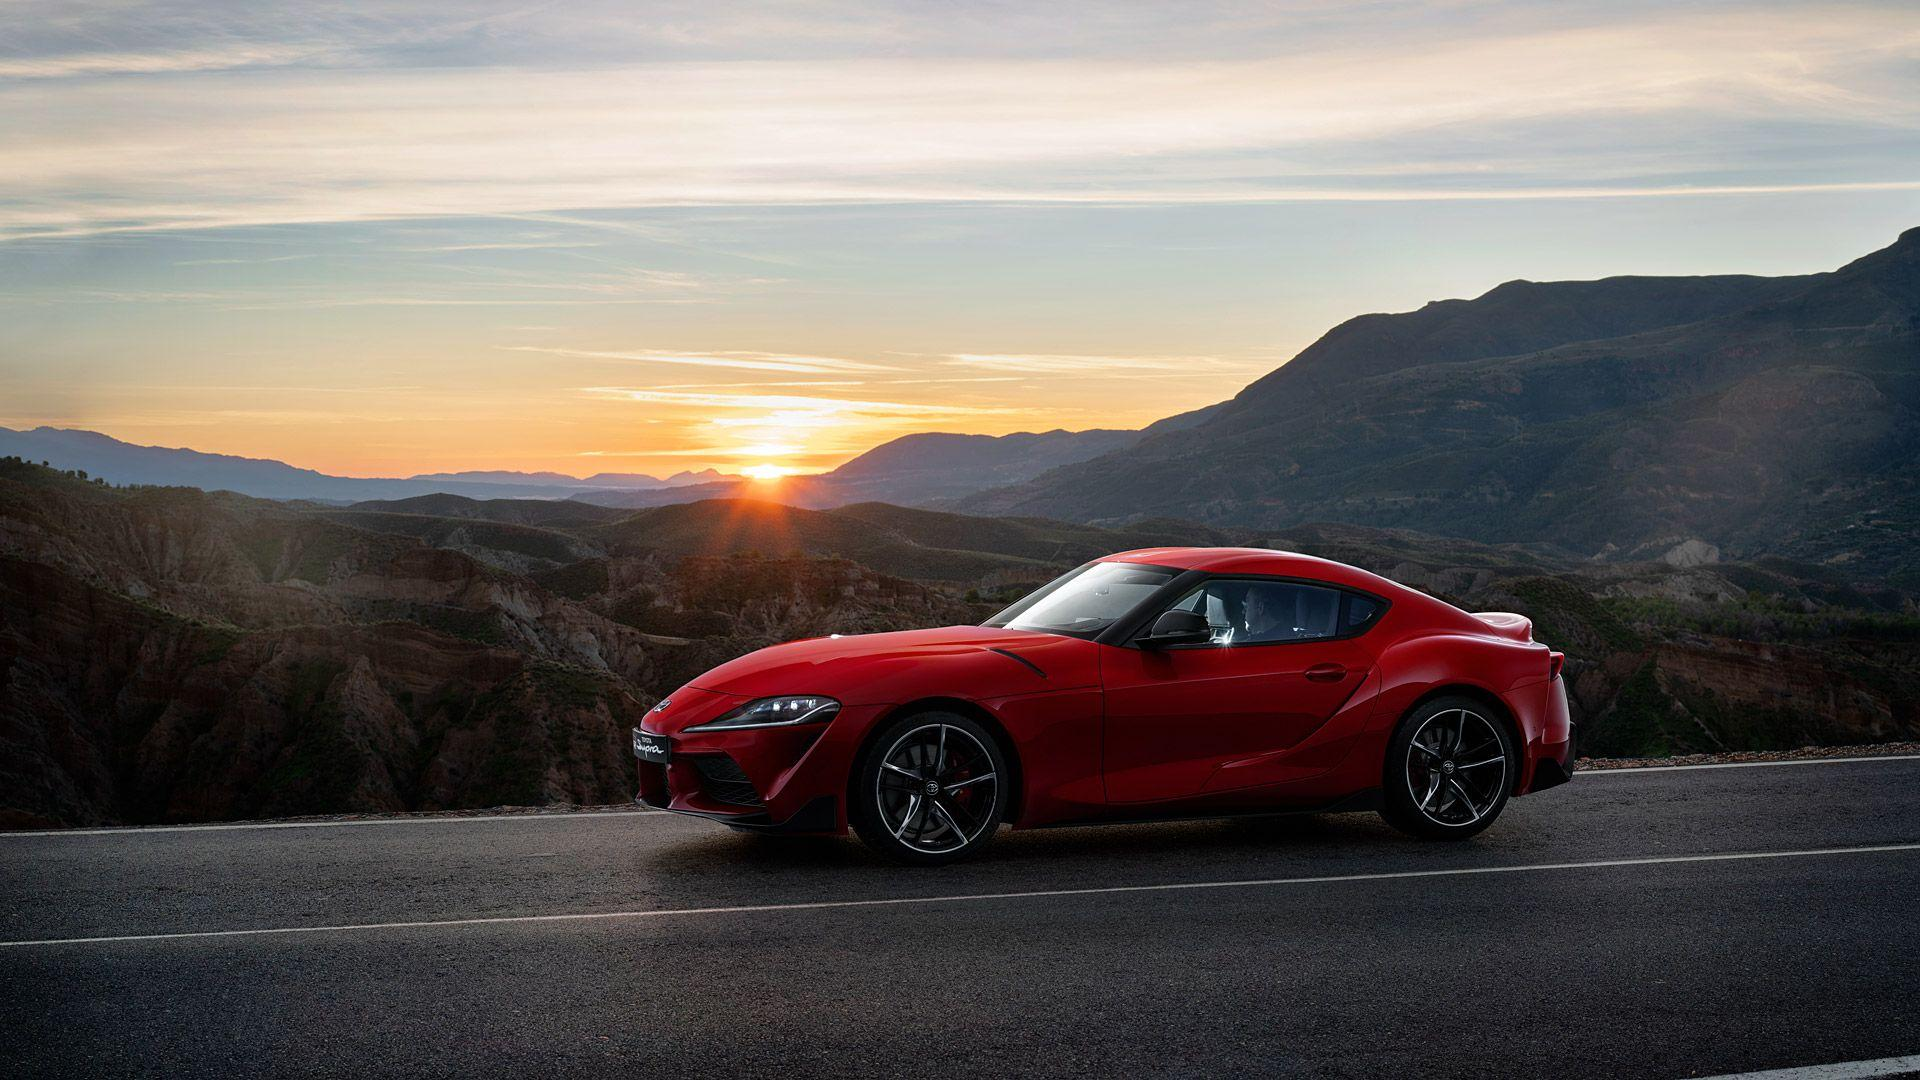 2020 Toyota Supra Wallpapers & HD Images - WSupercars